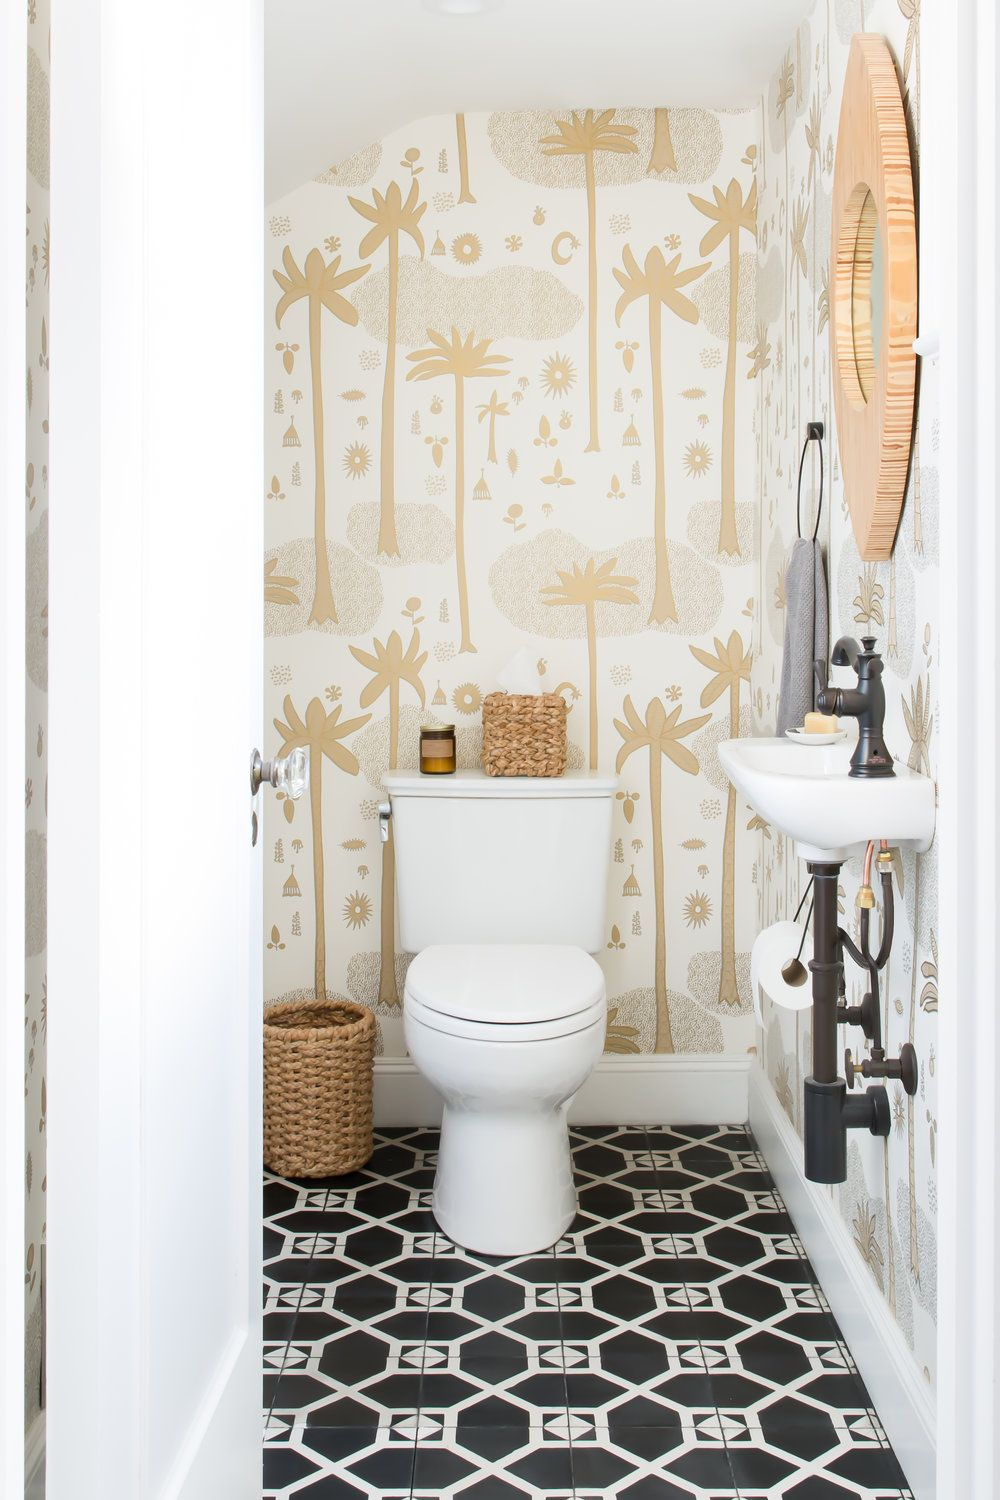 28 Bathroom Decorating Ideas On A Budget Chic And Affordable Bathroom Decor